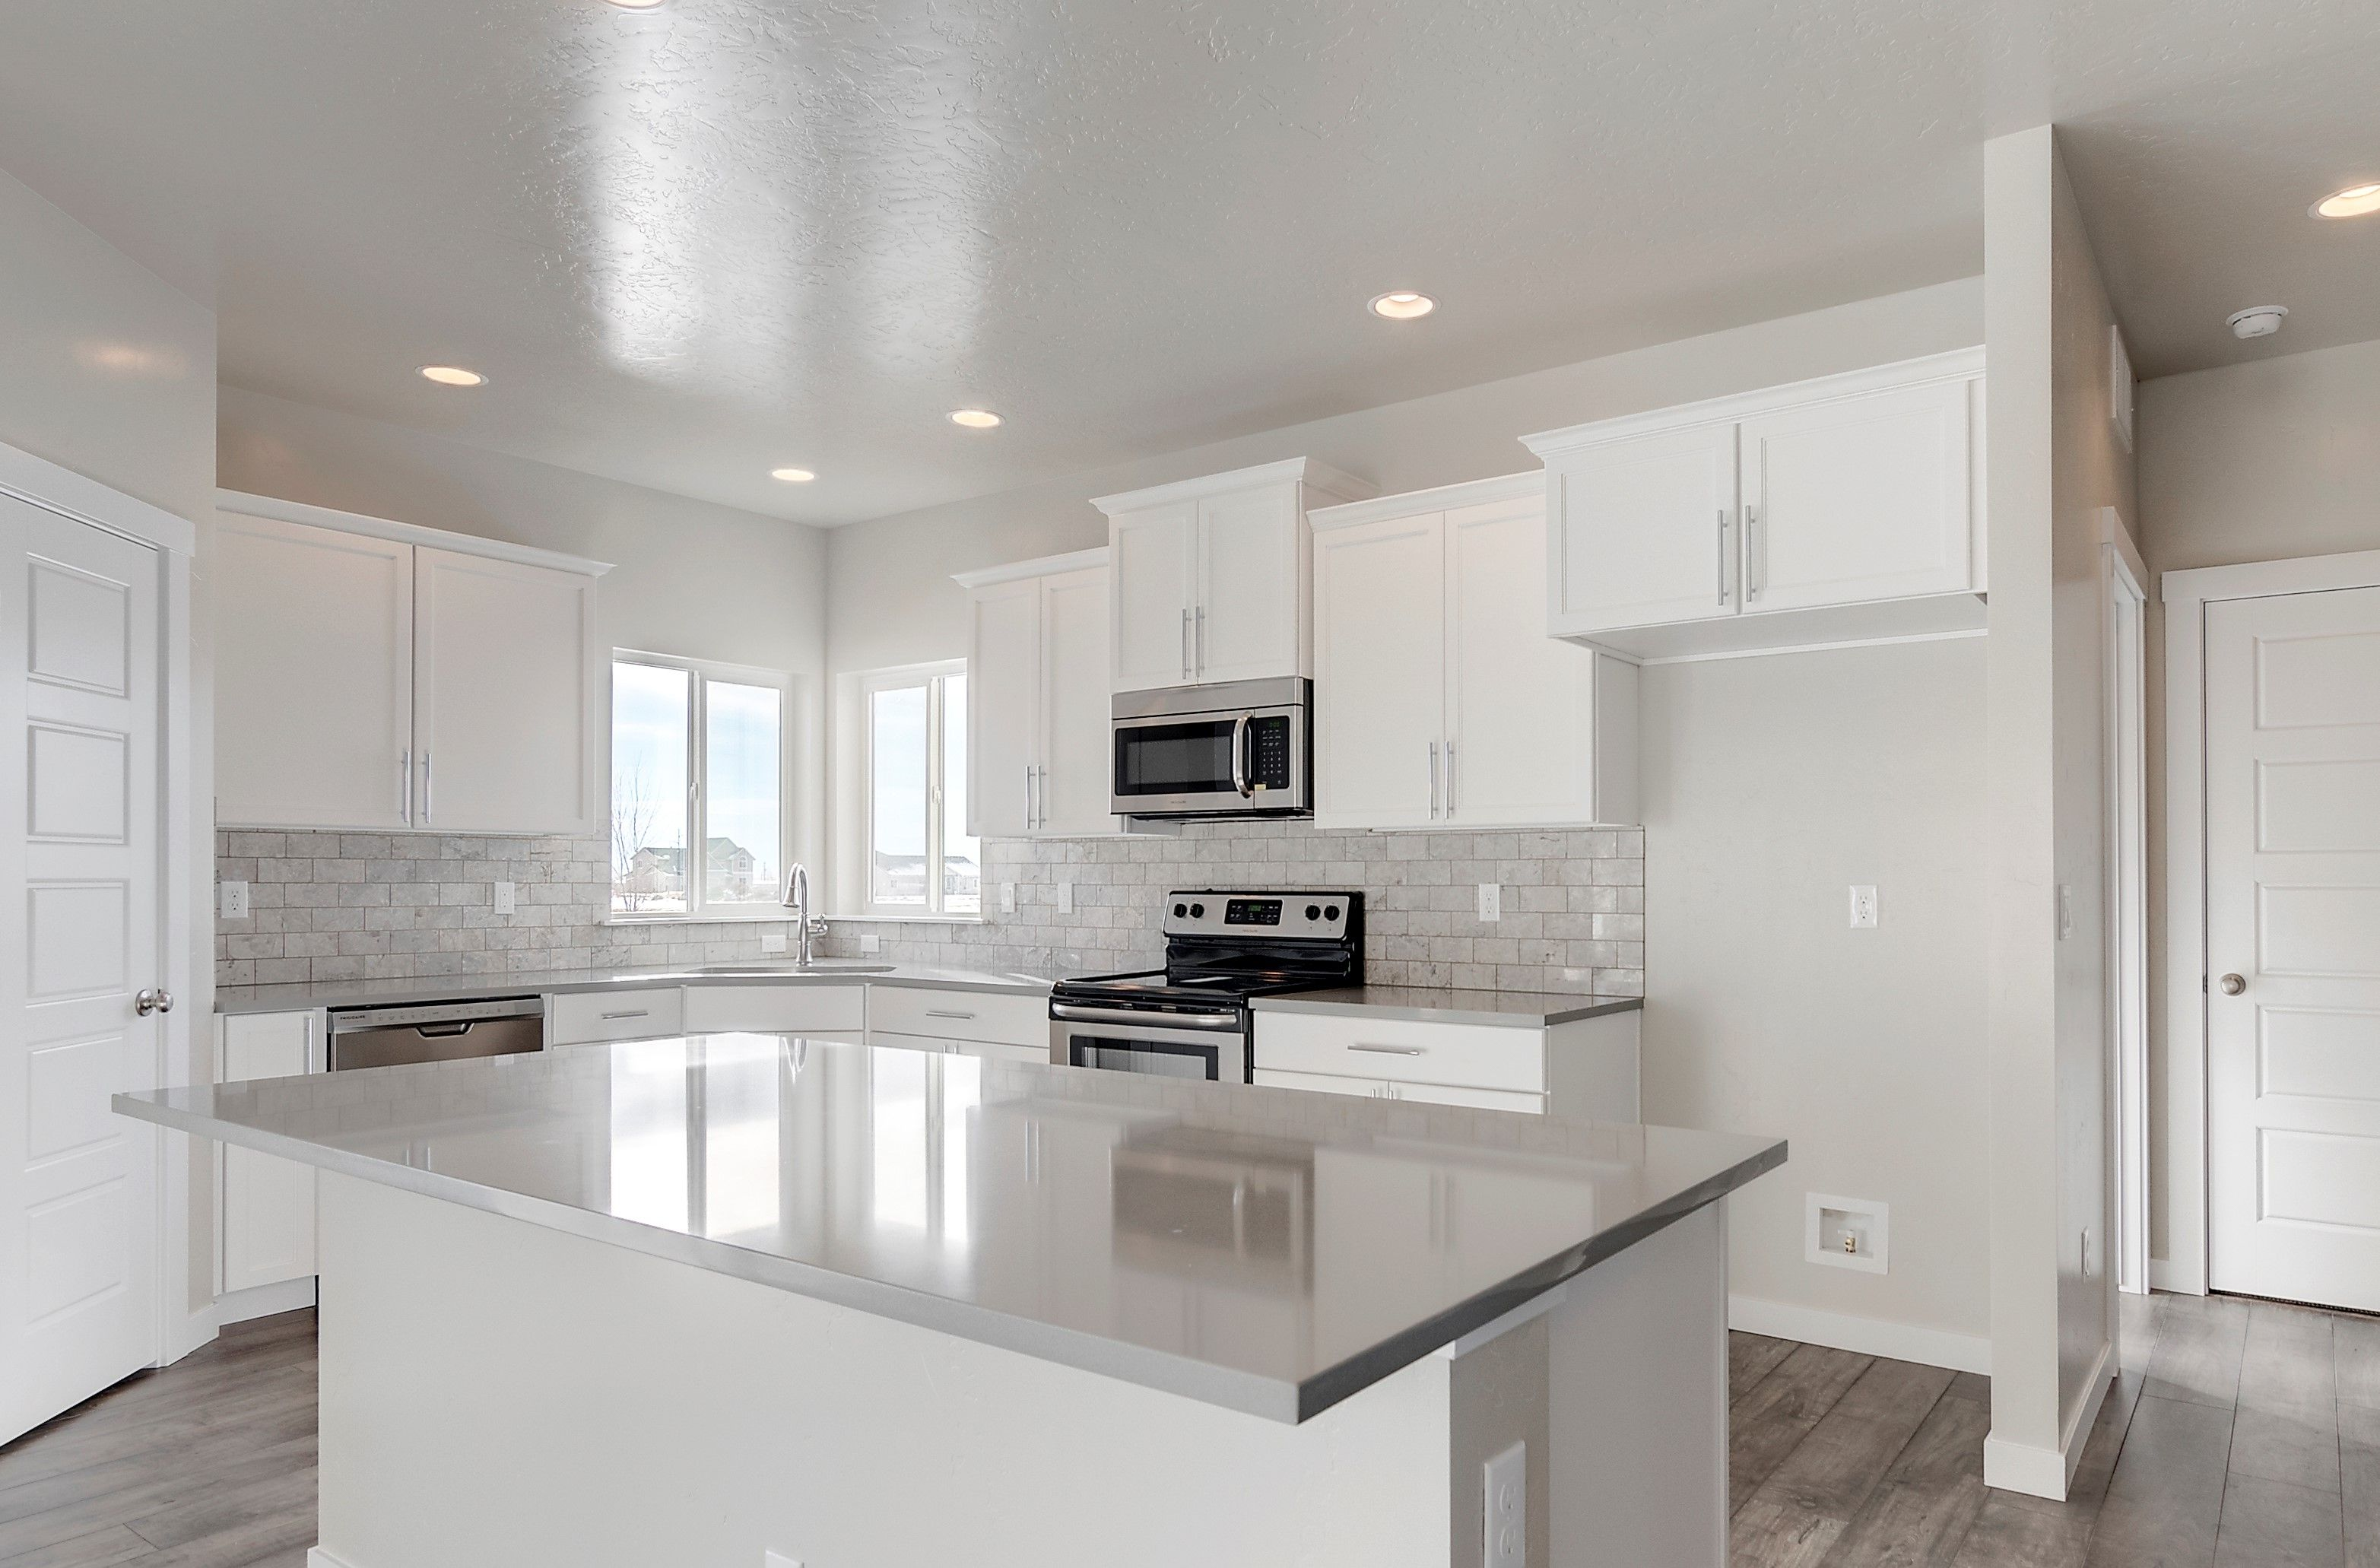 White cabinets, white cabinets, and WHITE CABINETS! What more do you ...